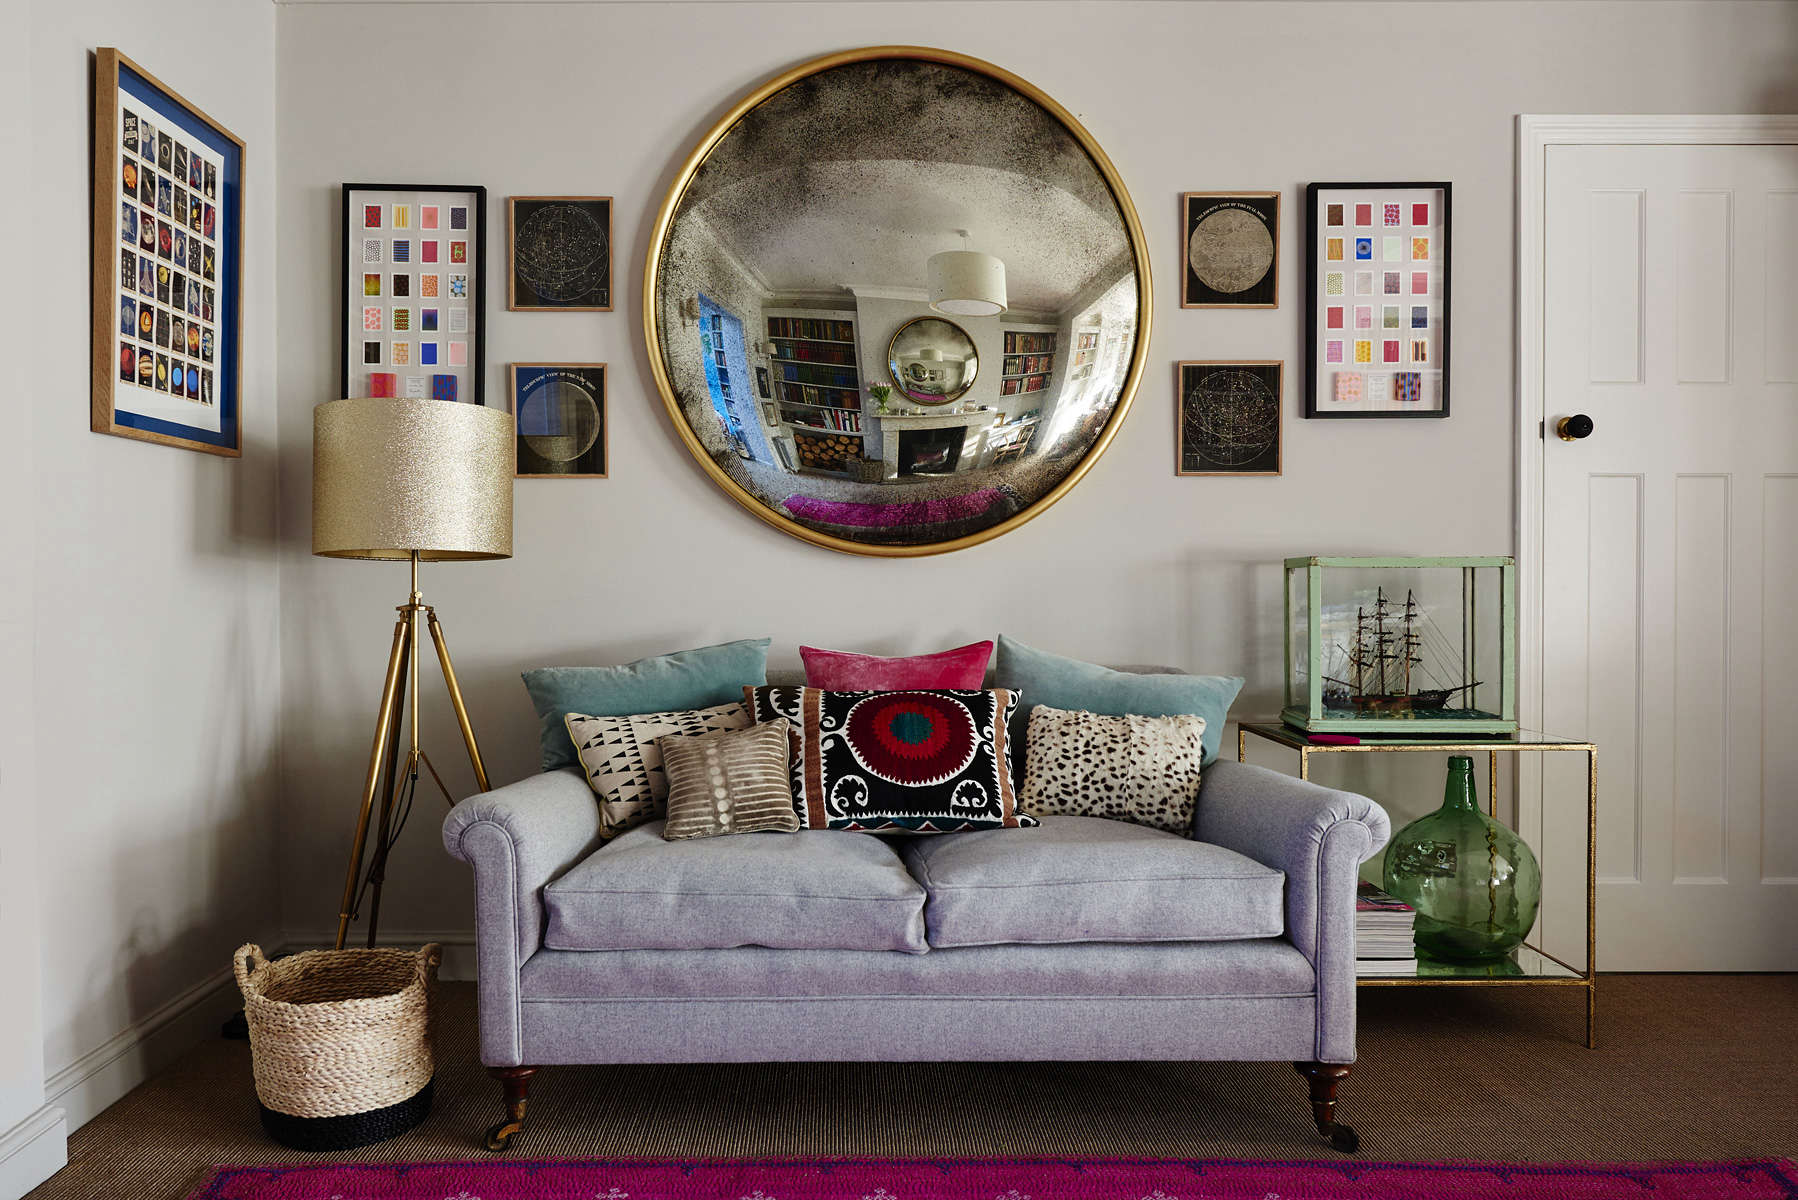 Reid and Wright Mirror with Orb Frame Antique Gold Finish Convex Glass